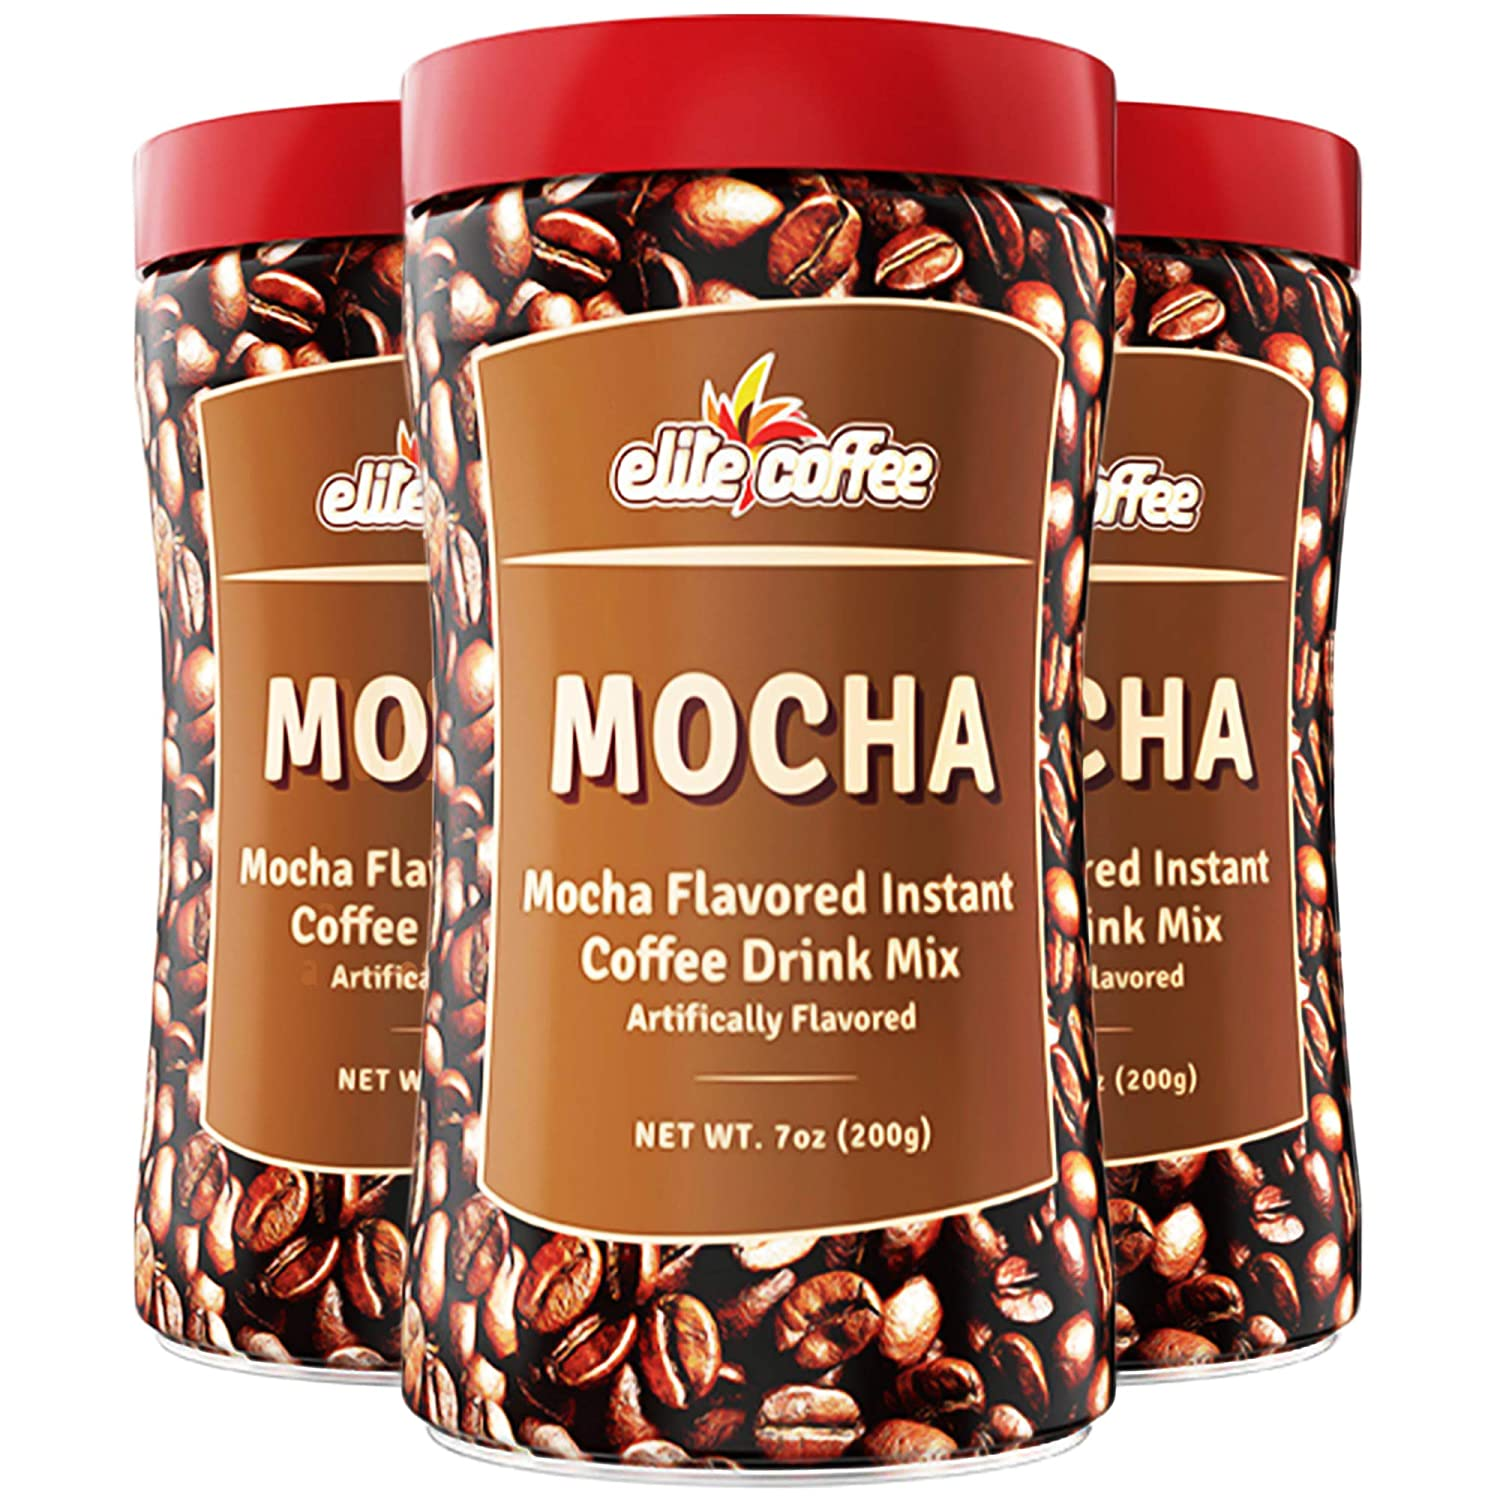 Elite Instant Coffee Mocha Flavored Drink 3 7oz Pack National products Mix Glute Oakland Mall